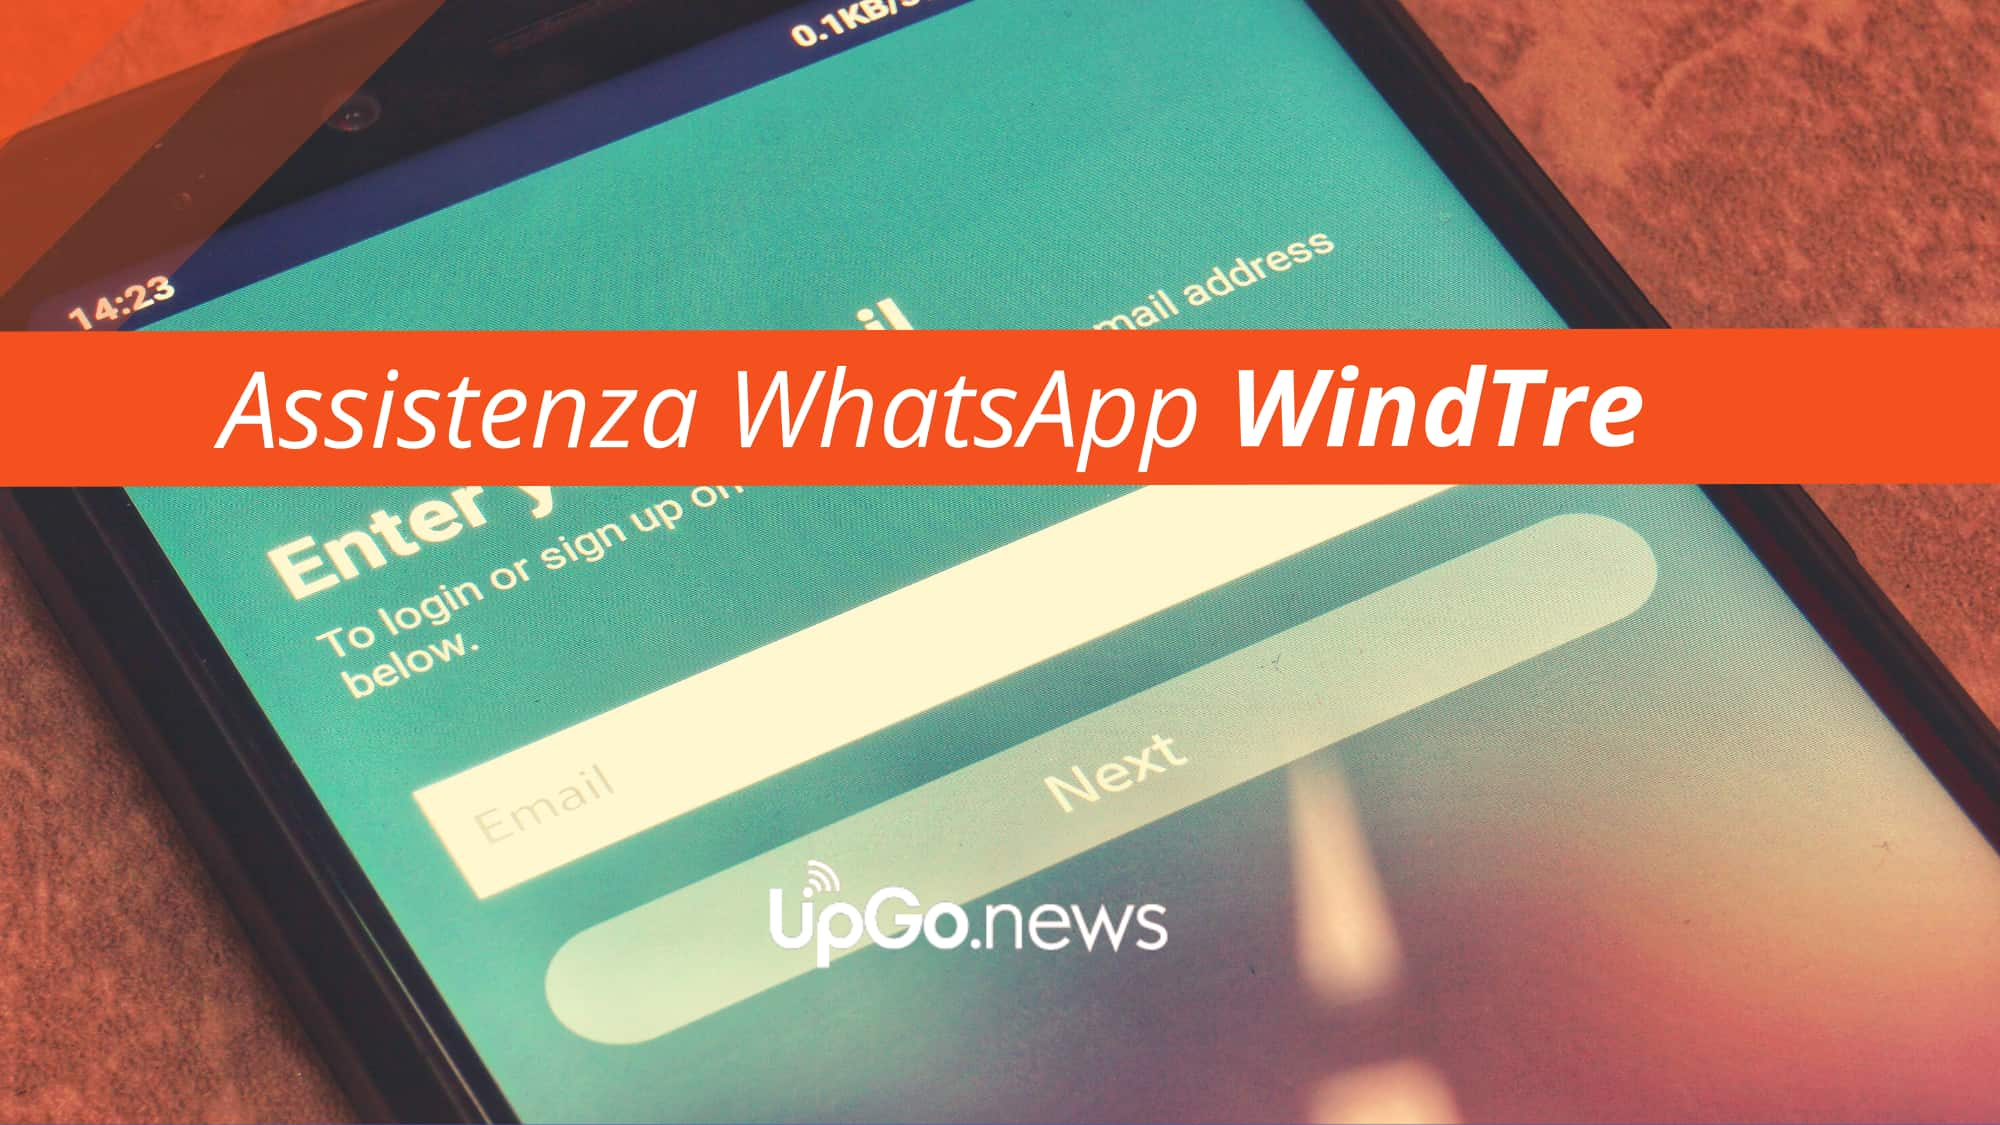 Assistenza WhatsApp WindTre